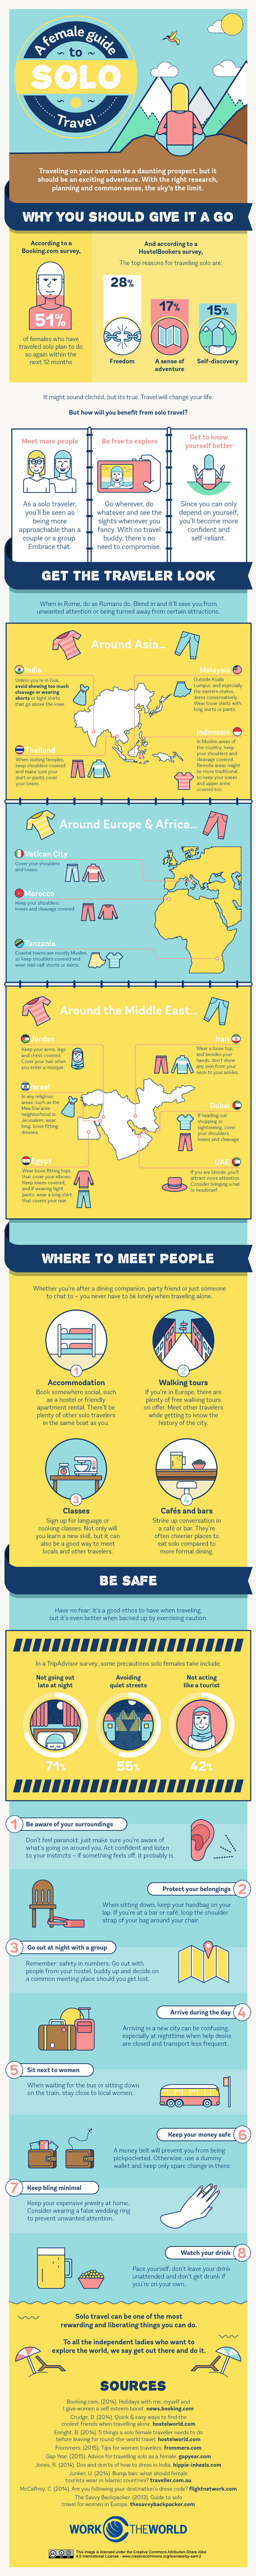 Solo Travel Guide for Women Infographic